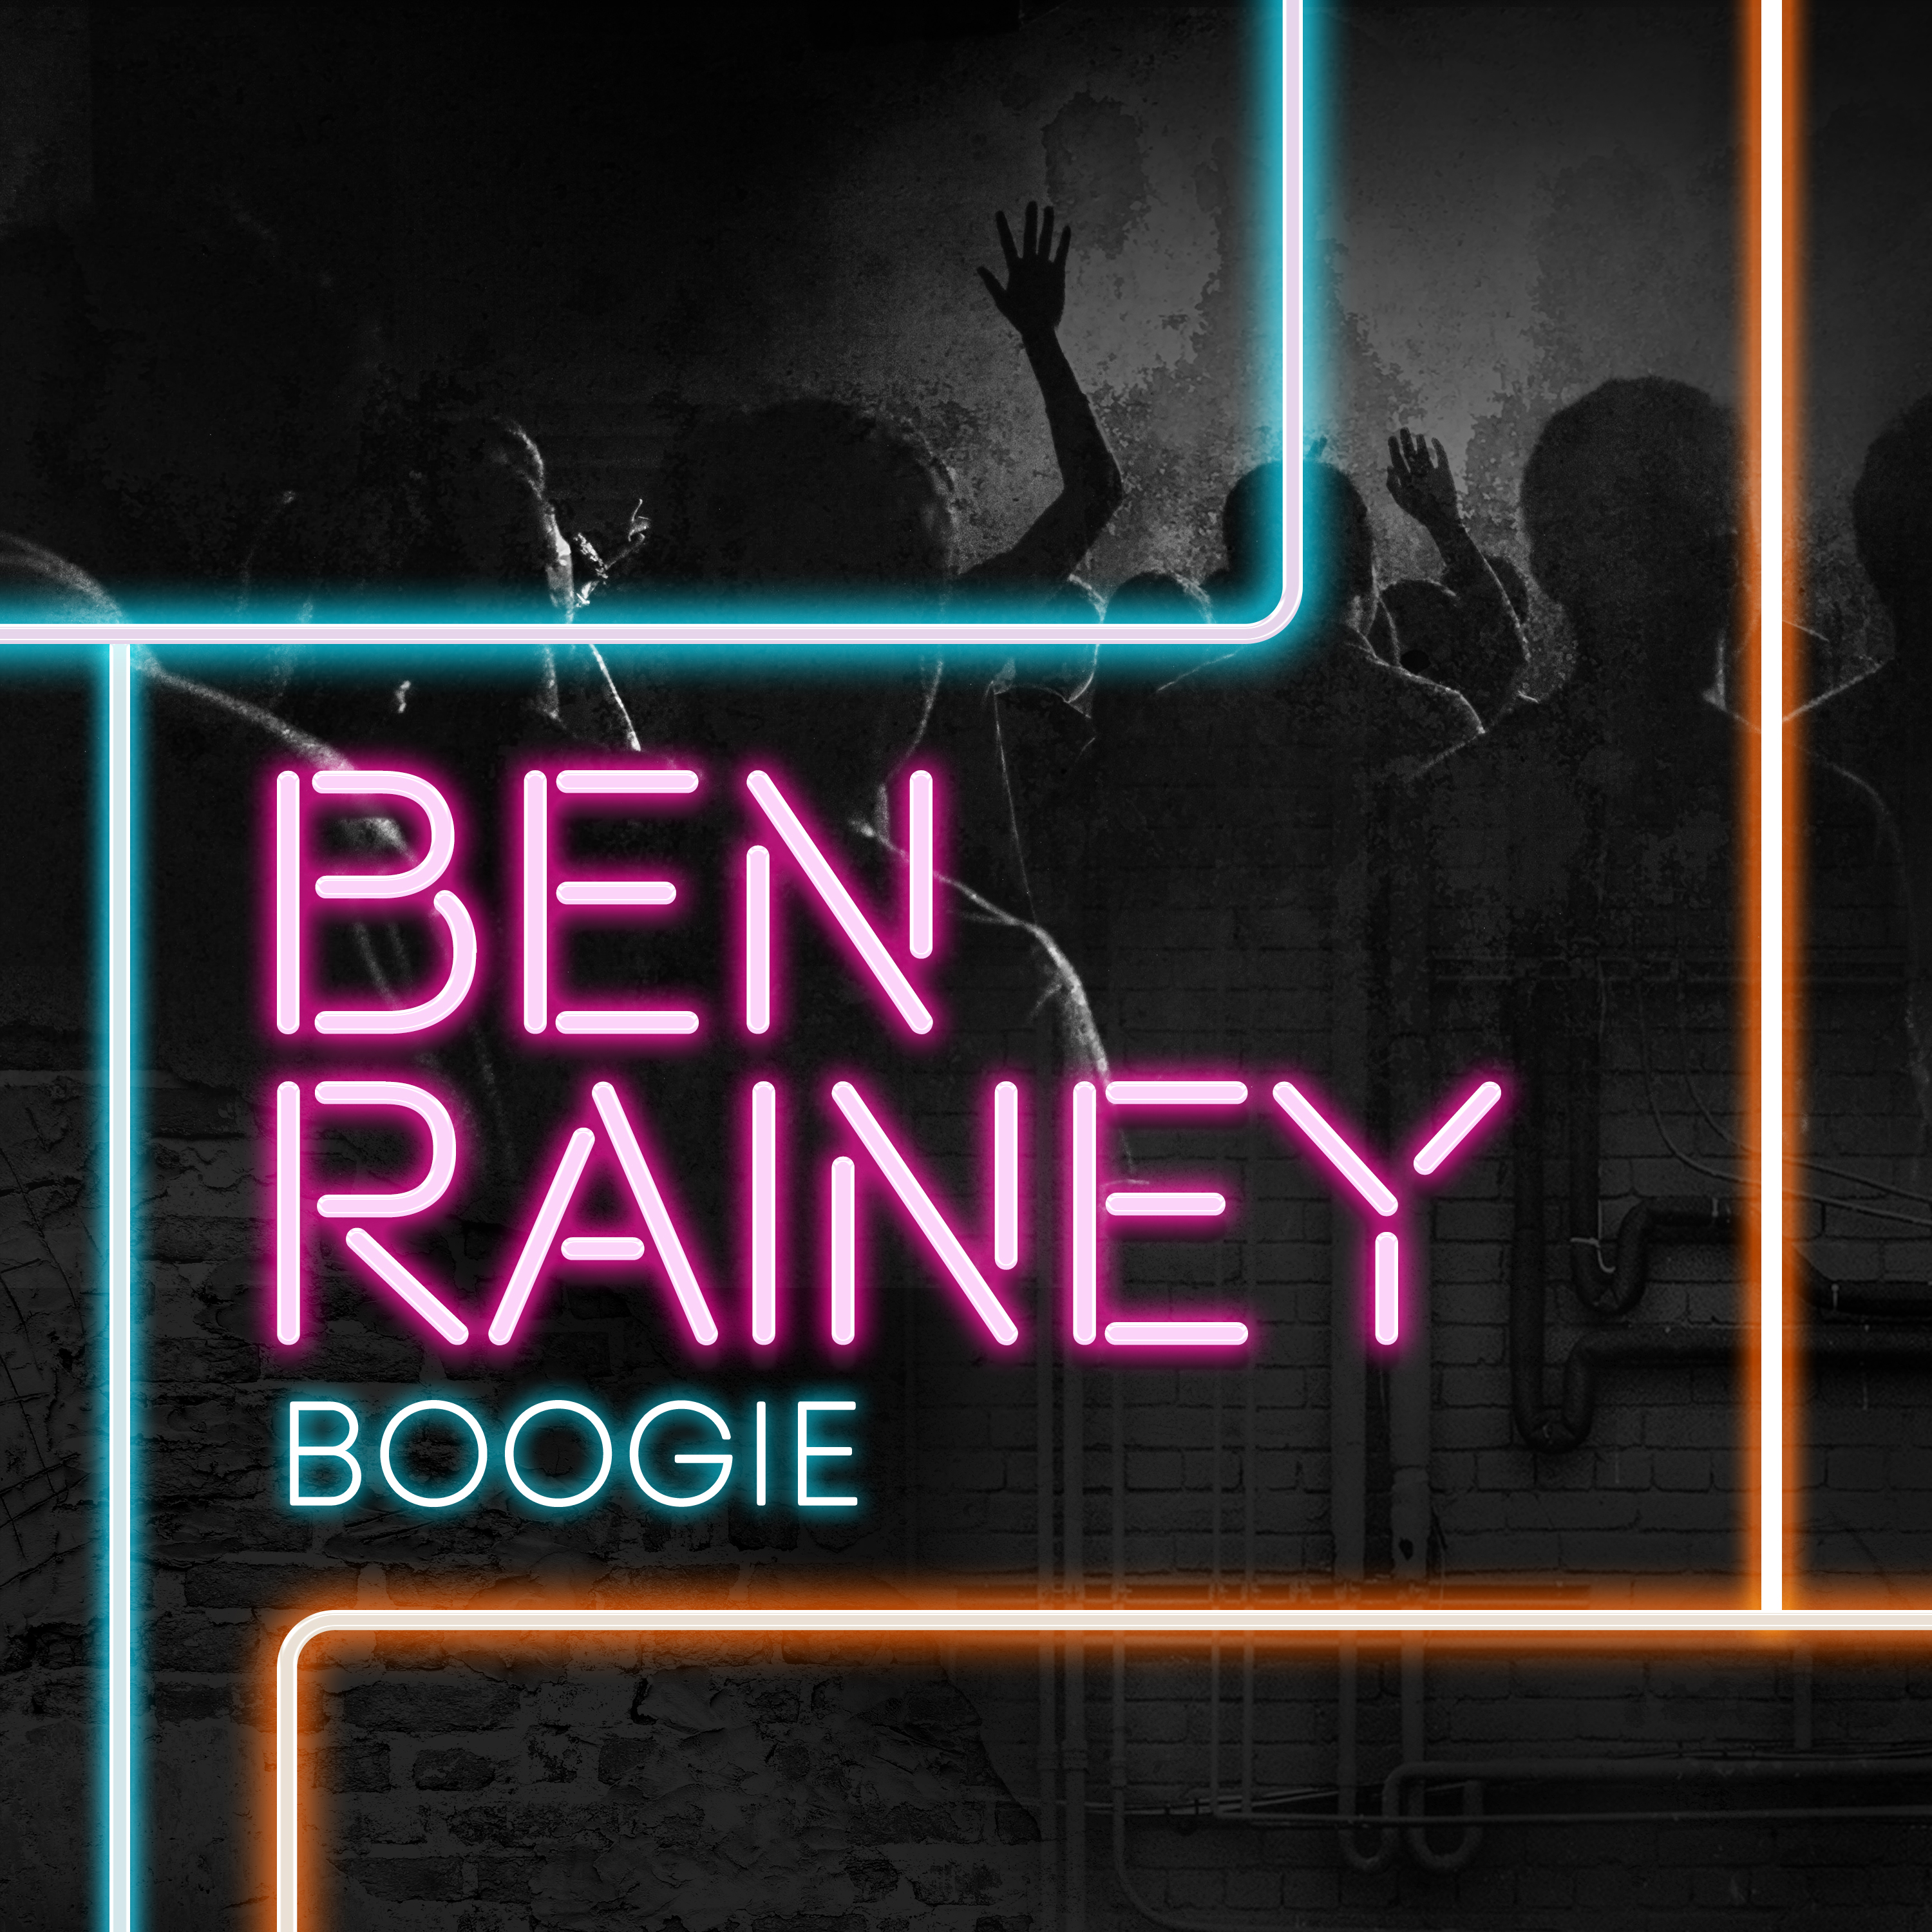 ben_rainey_boogie_artwork.jpg